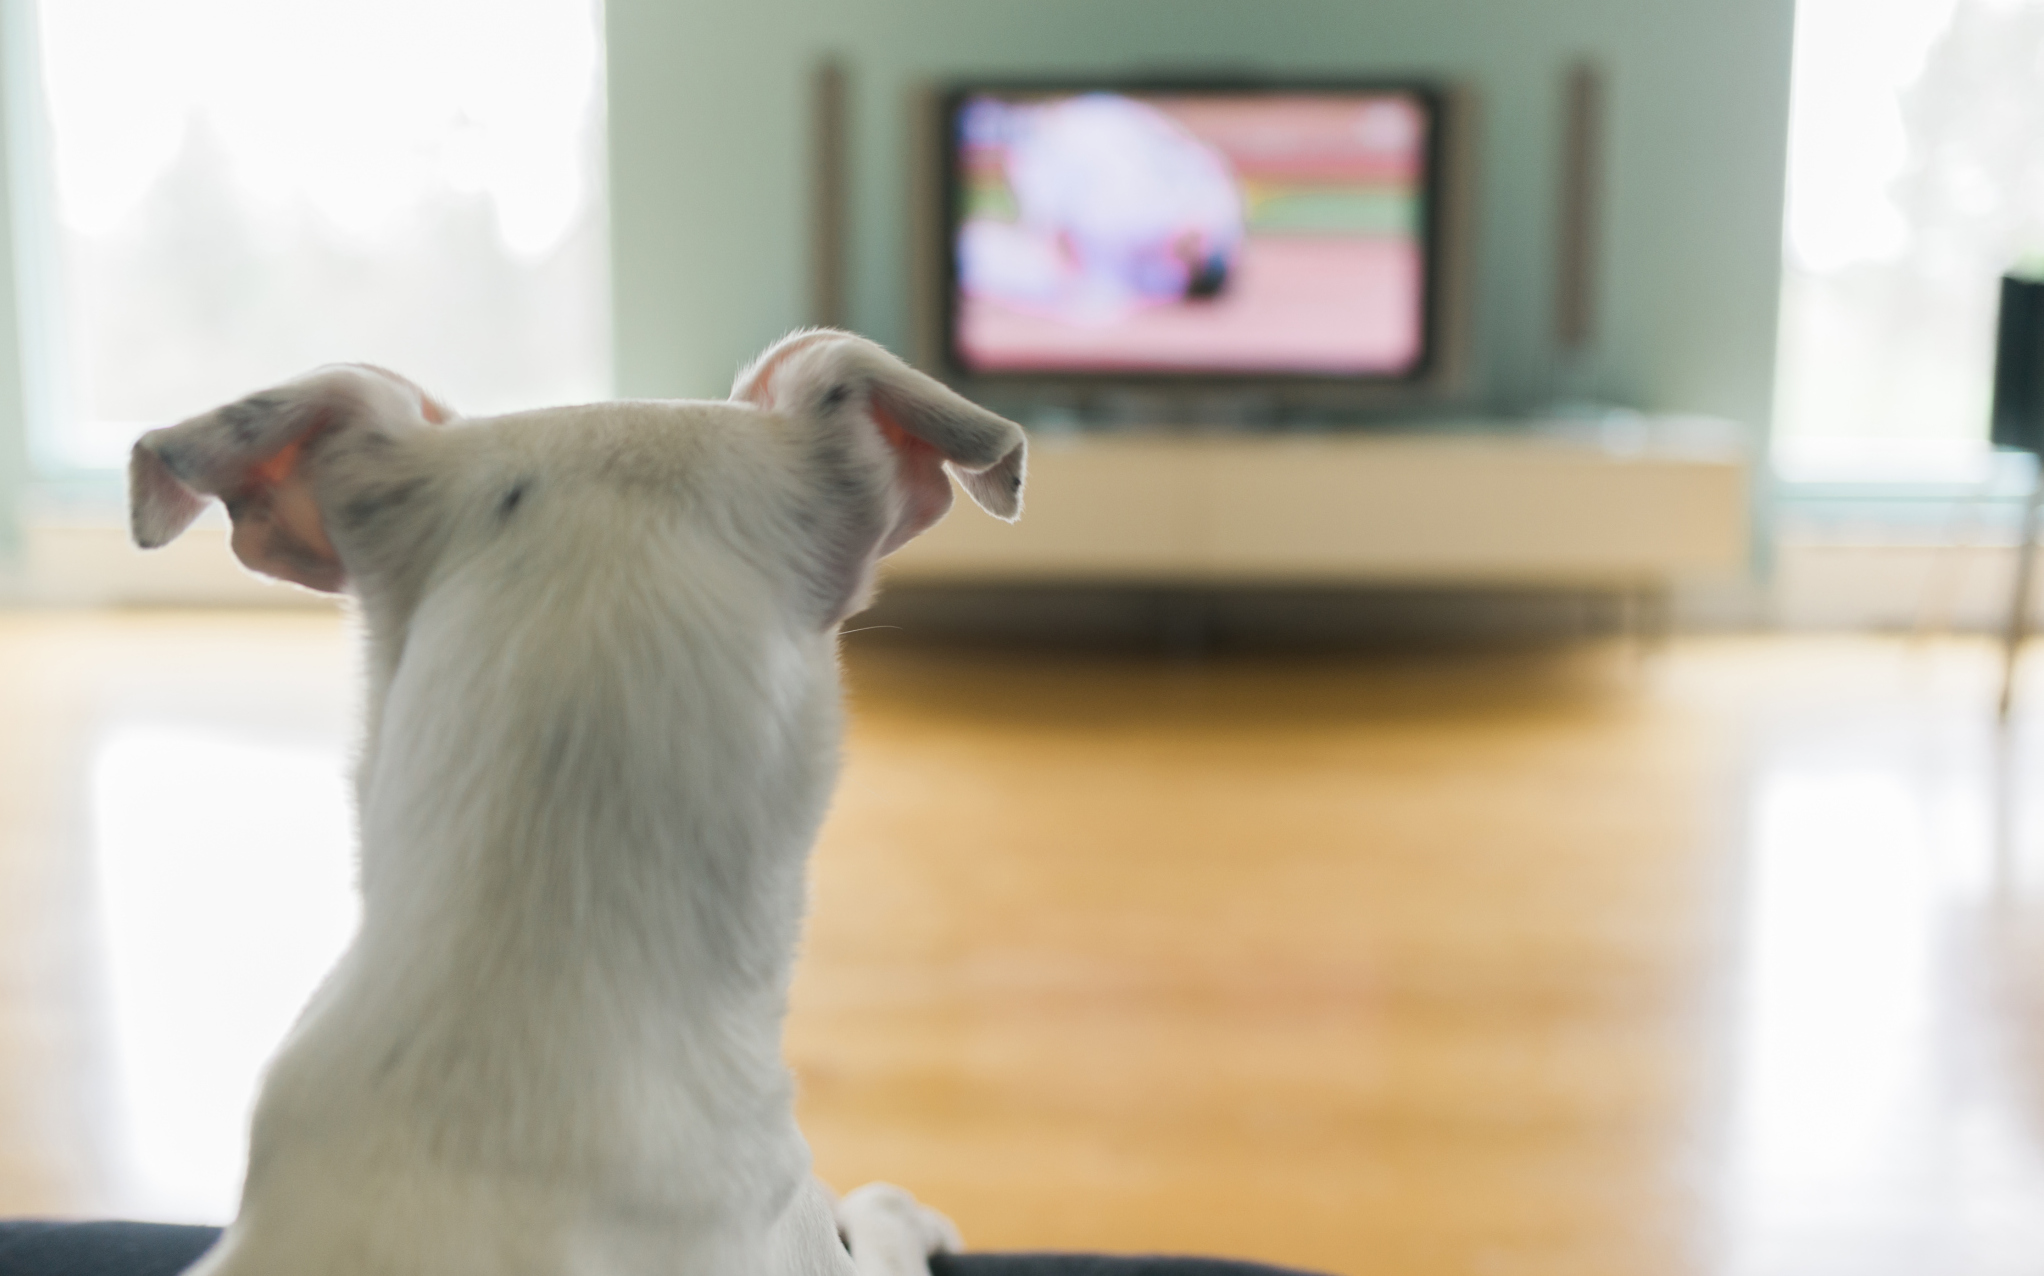 Is it OK to let your dog watch TV if they like it? – SheKnows